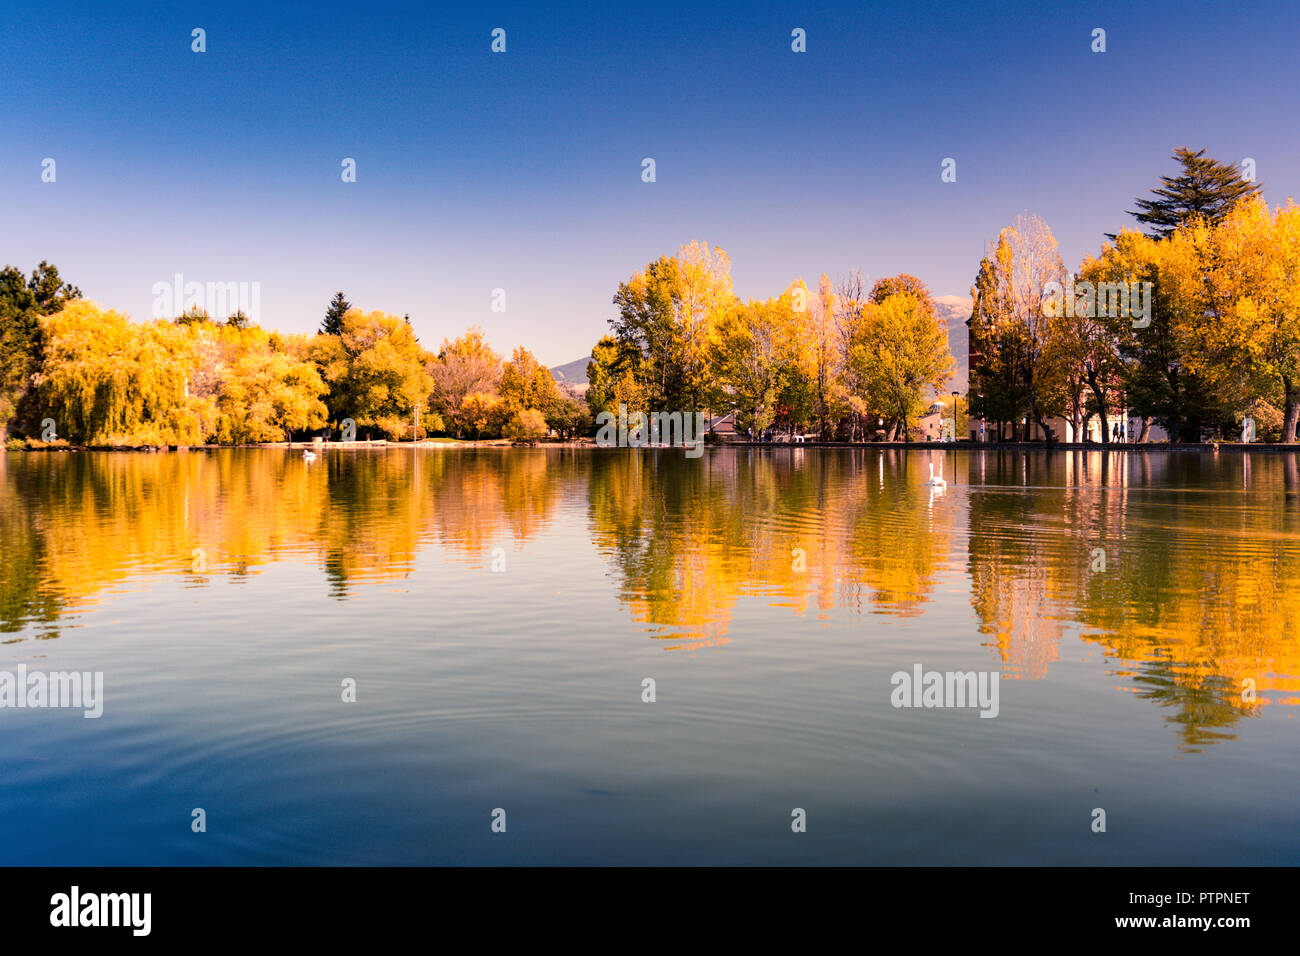 Autumn colors and reflection on the Puigcerda's pond water Stock Photo